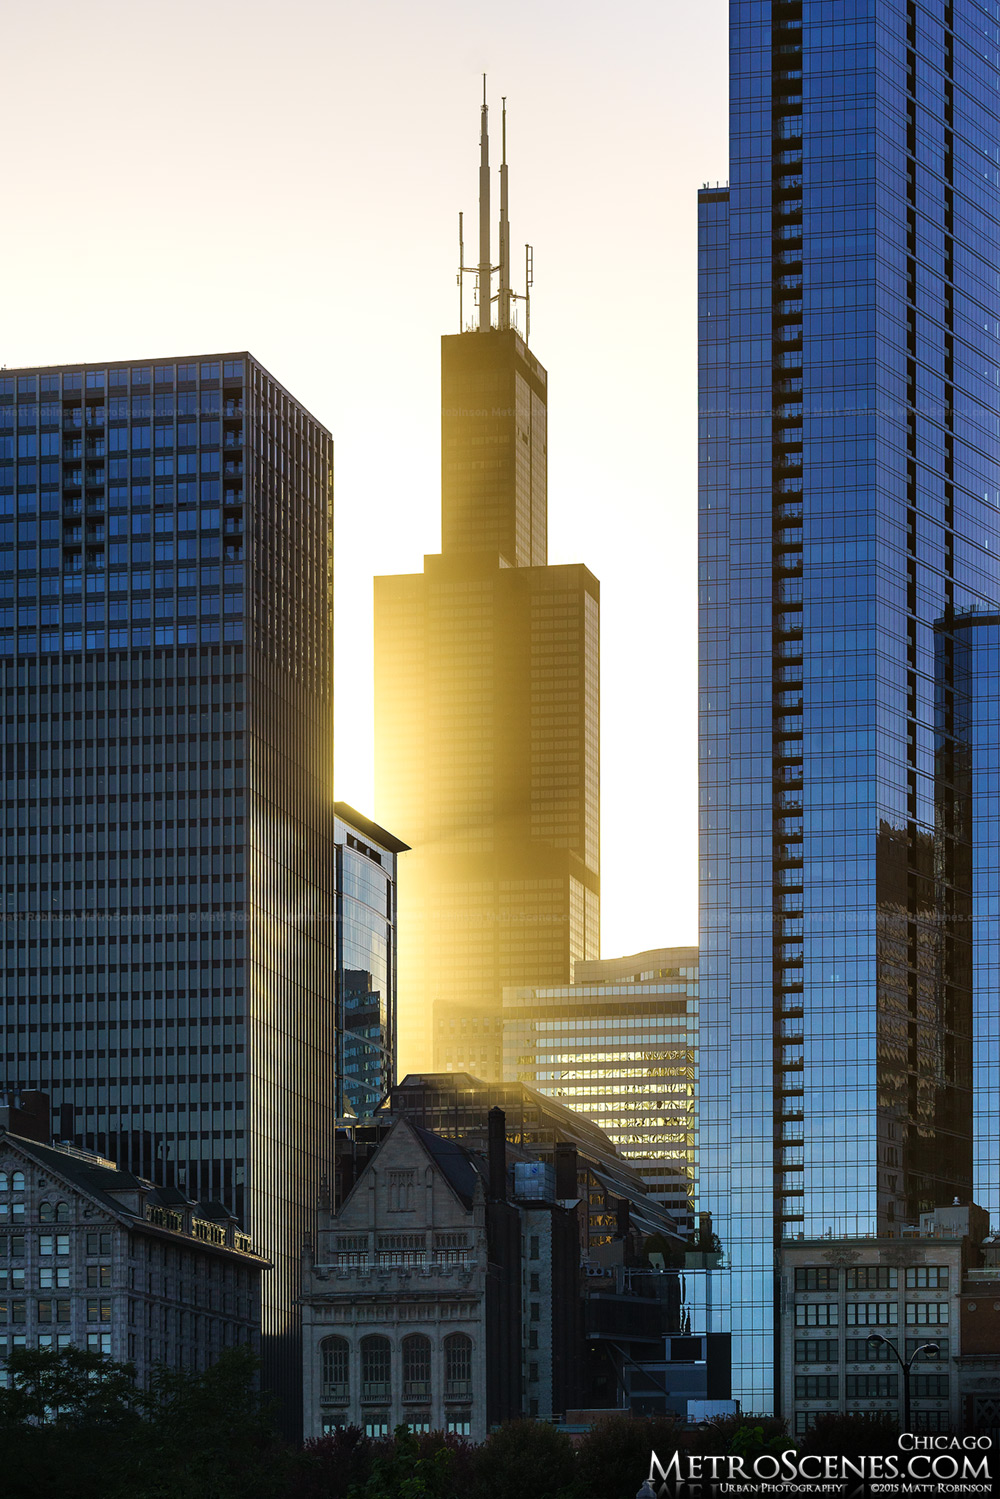 Sunlight rays through Sears Tower (Willis Tower)